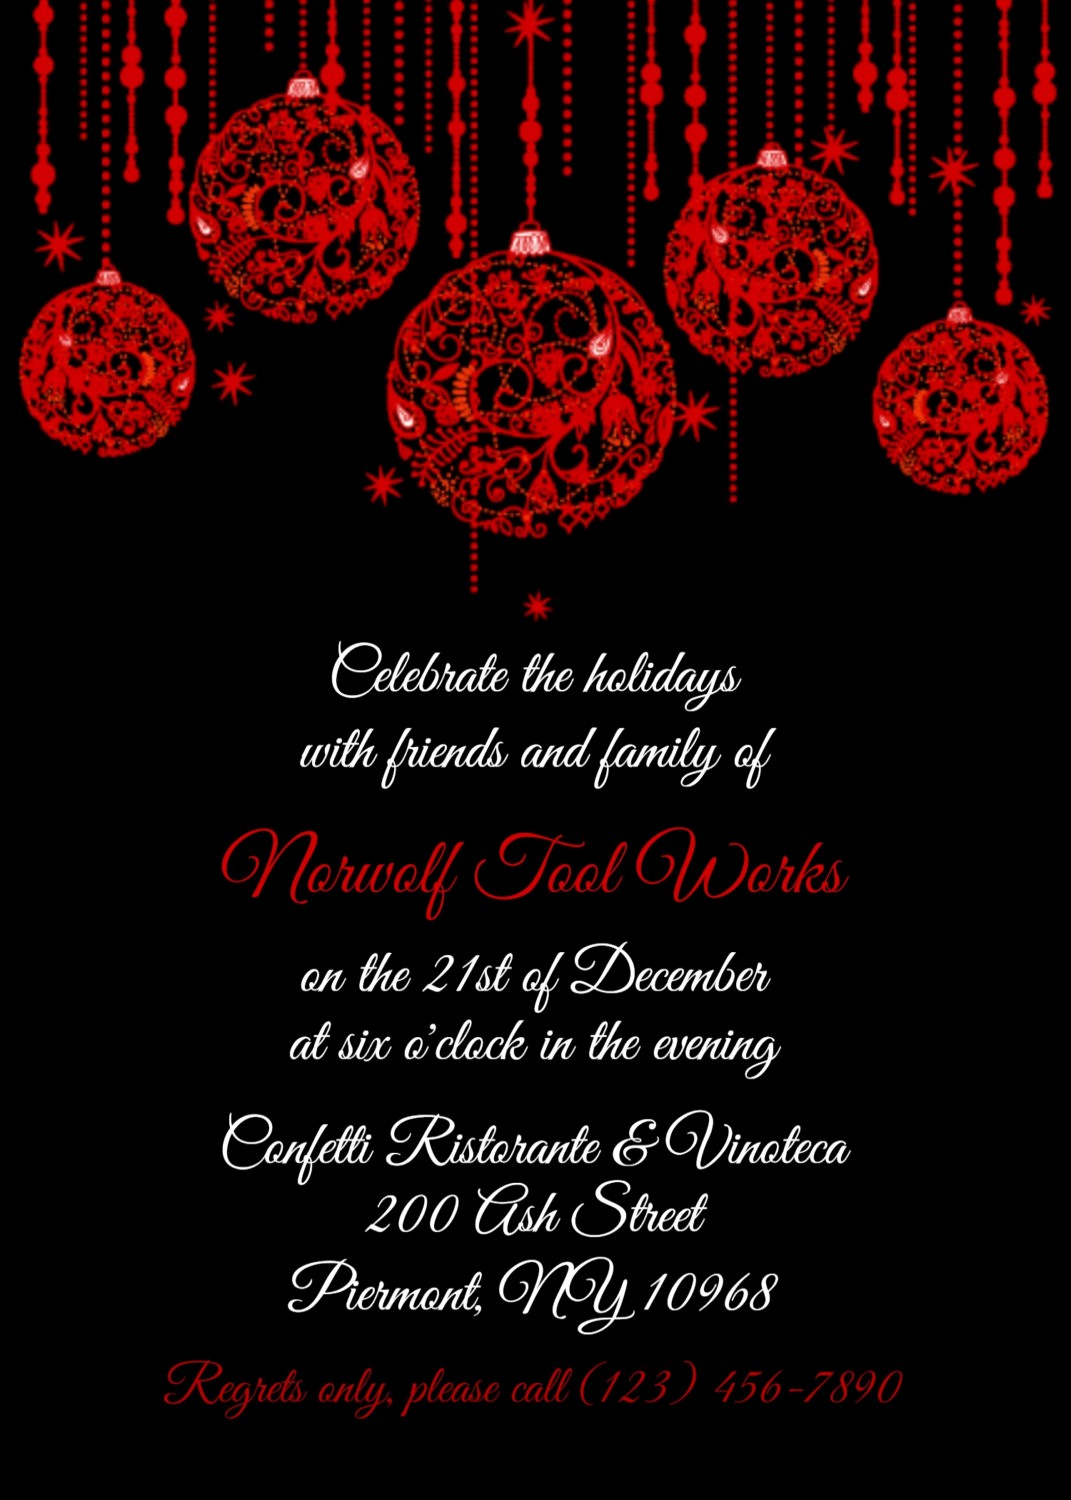 Office Christmas Party Flyer Templates Luxury Fice Christmas Party Invitations